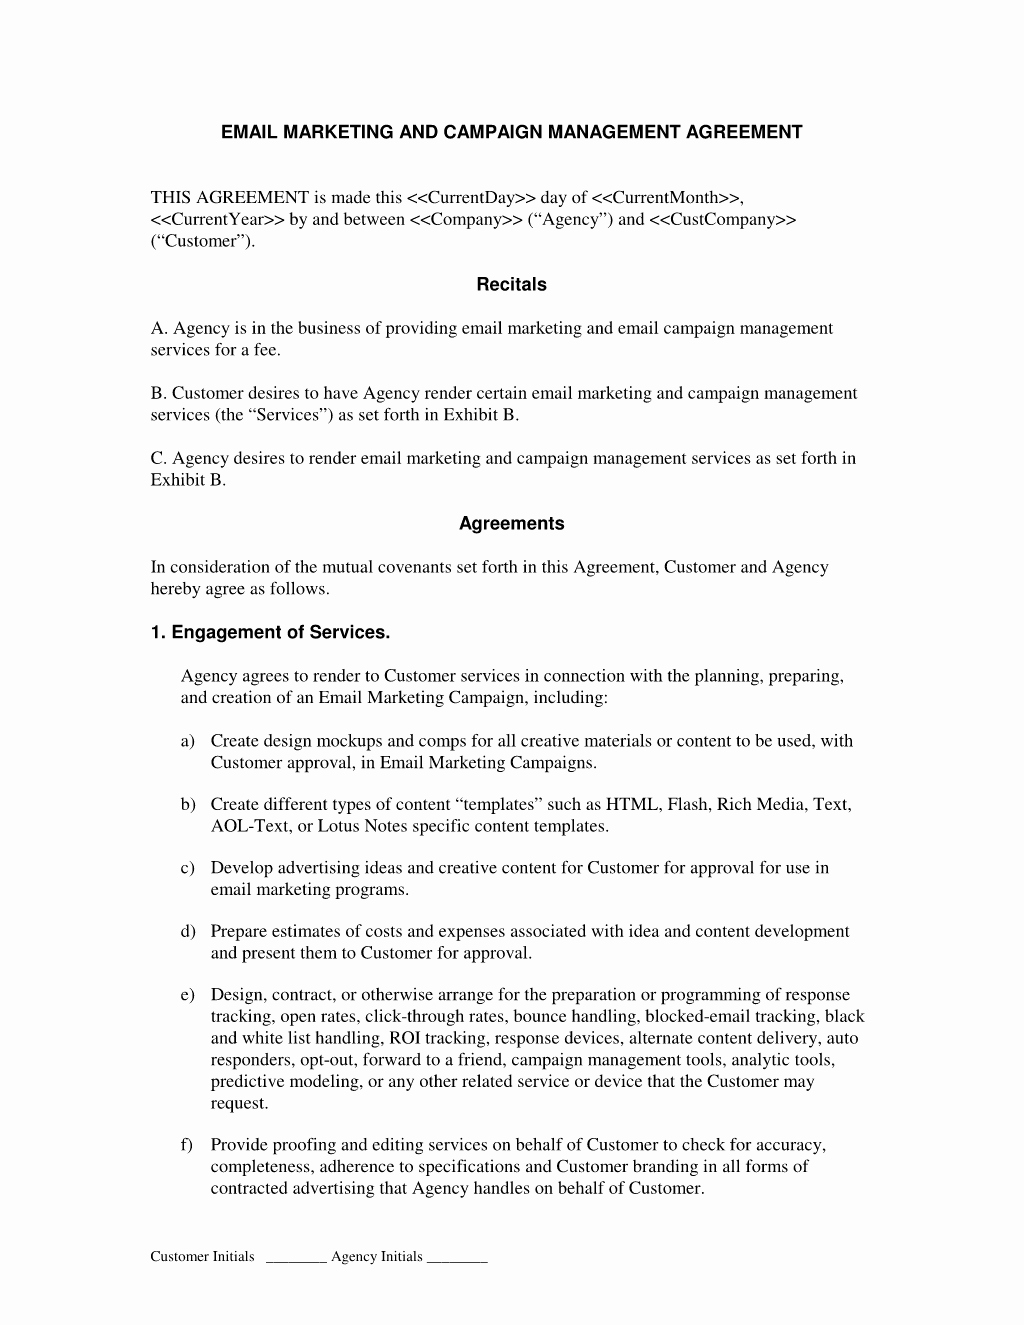 Marketing Service Agreement Template Beautiful How to Write Your Own Email Marketing and Campaign